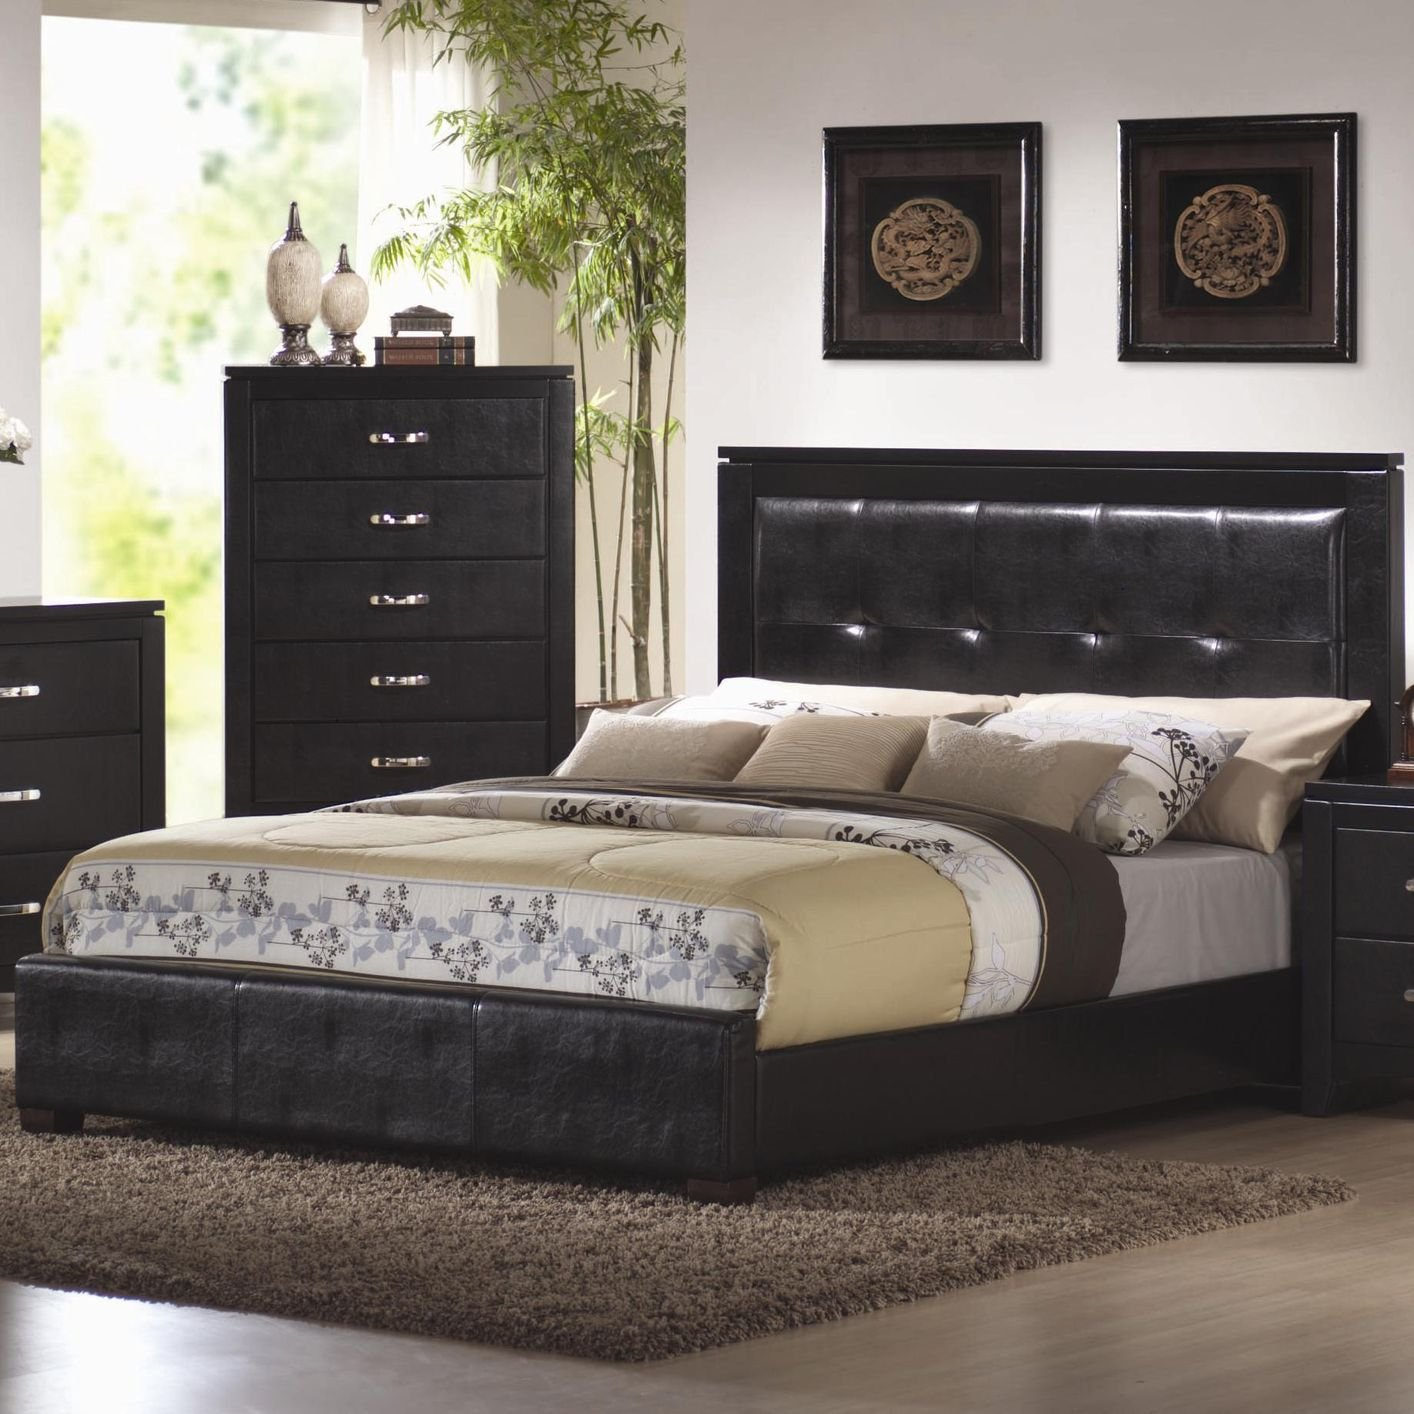 Coaster 201401kw black california king size leather bed - California king bedroom furniture ...